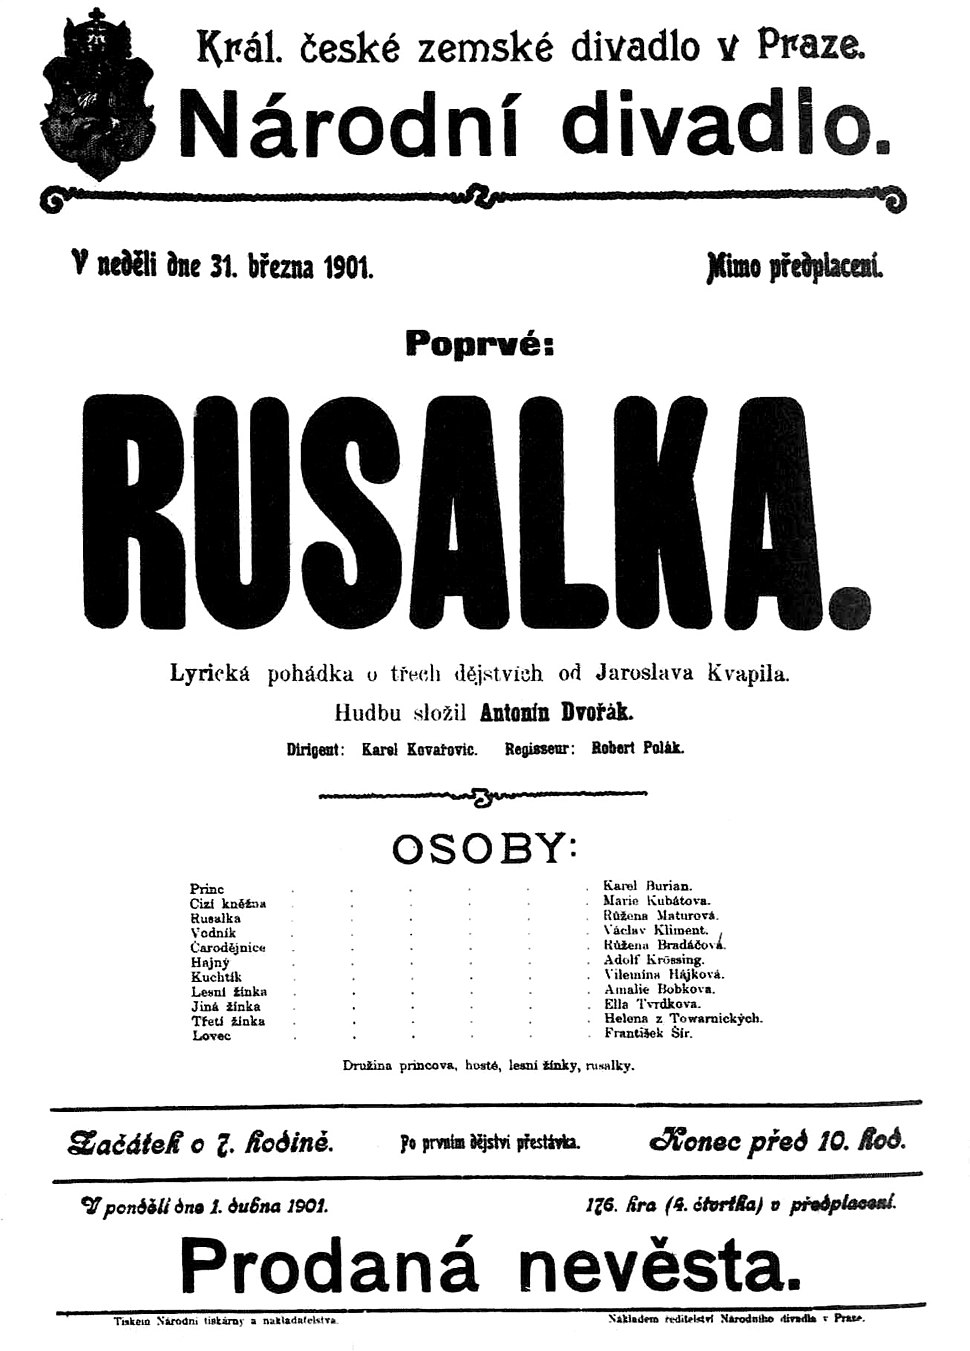 Poster for the premiere of Rusalka in Prague, 31 March, 1901.